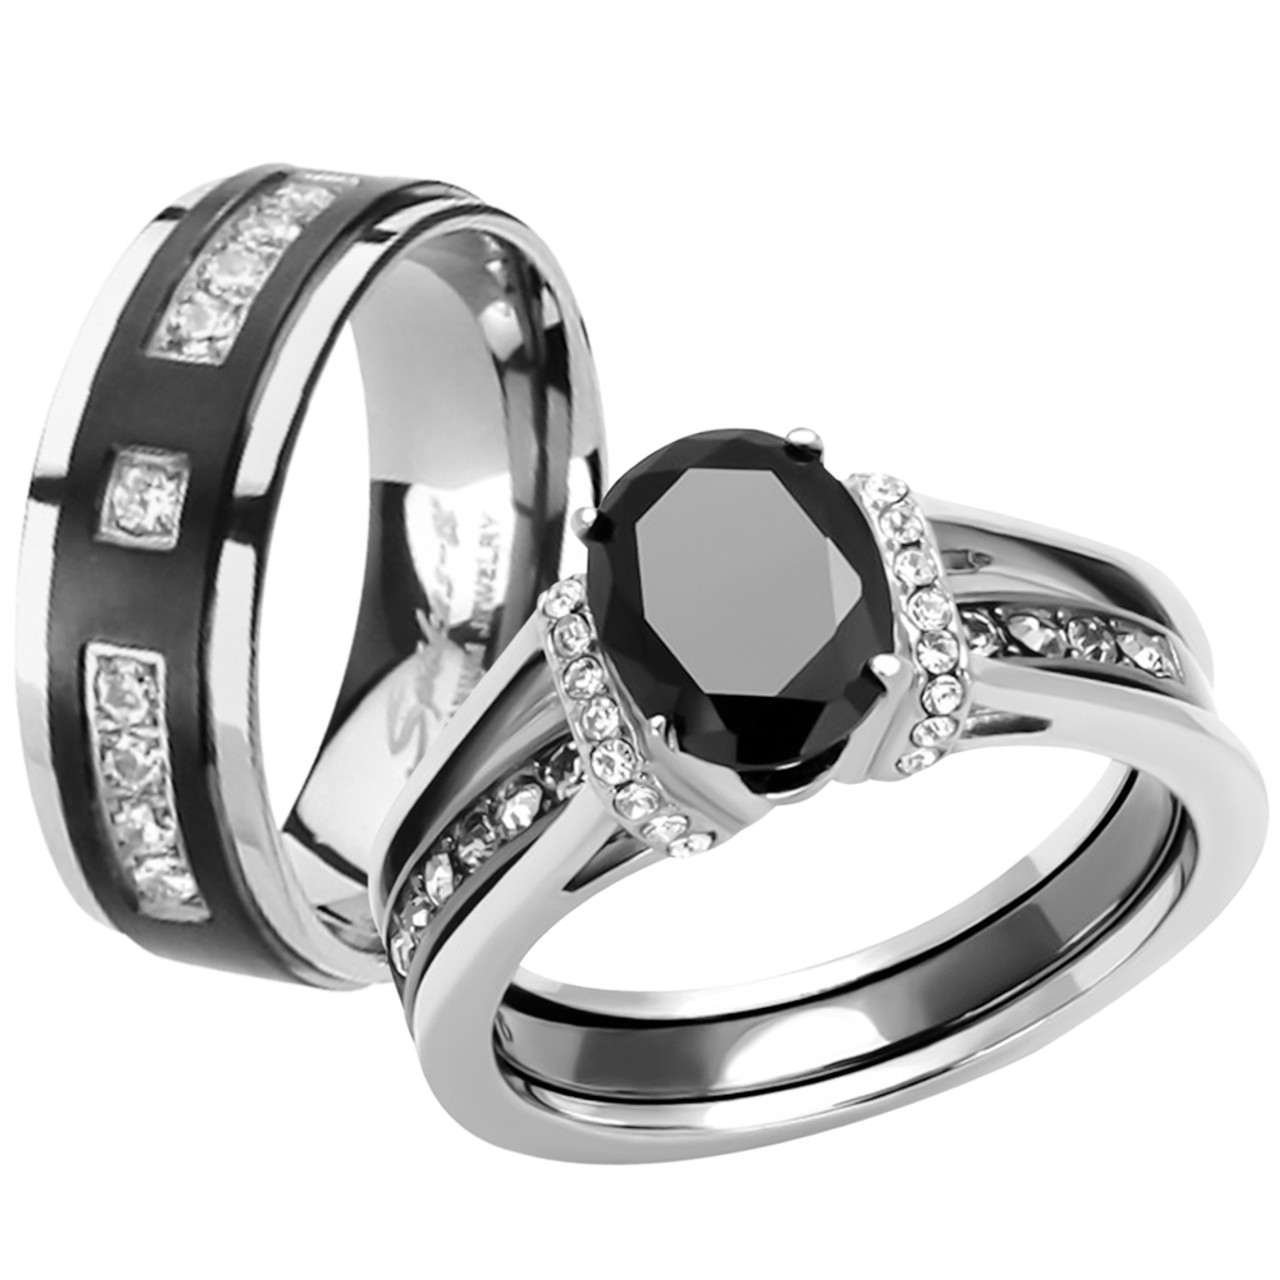 Black Stainless Steel /& Titanium His Hers Wedding Band Engagement Ring Set CZ cu